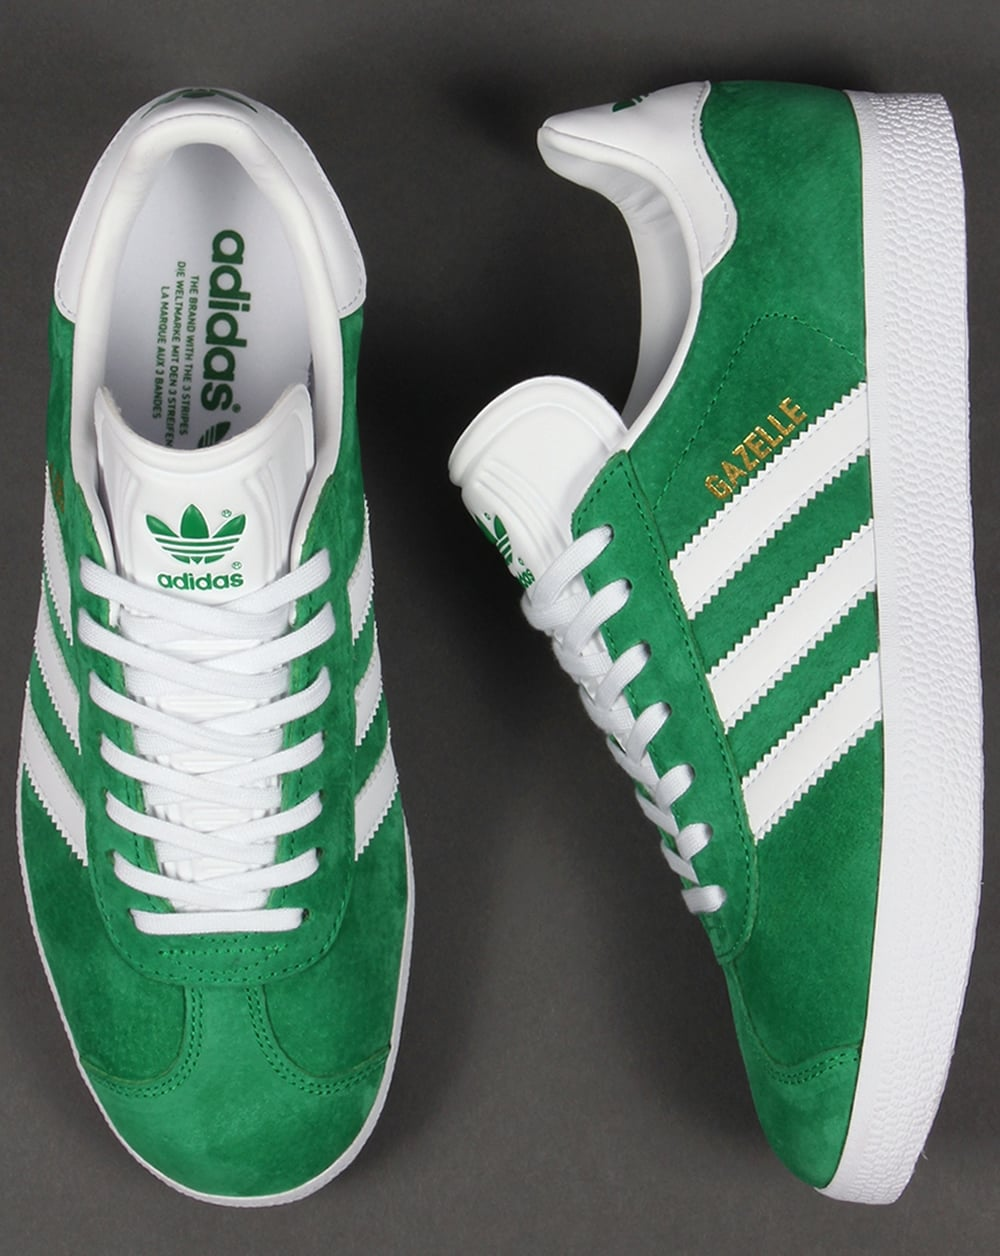 adidas gazelle 2 green white suede trainers adidas shoes for boys